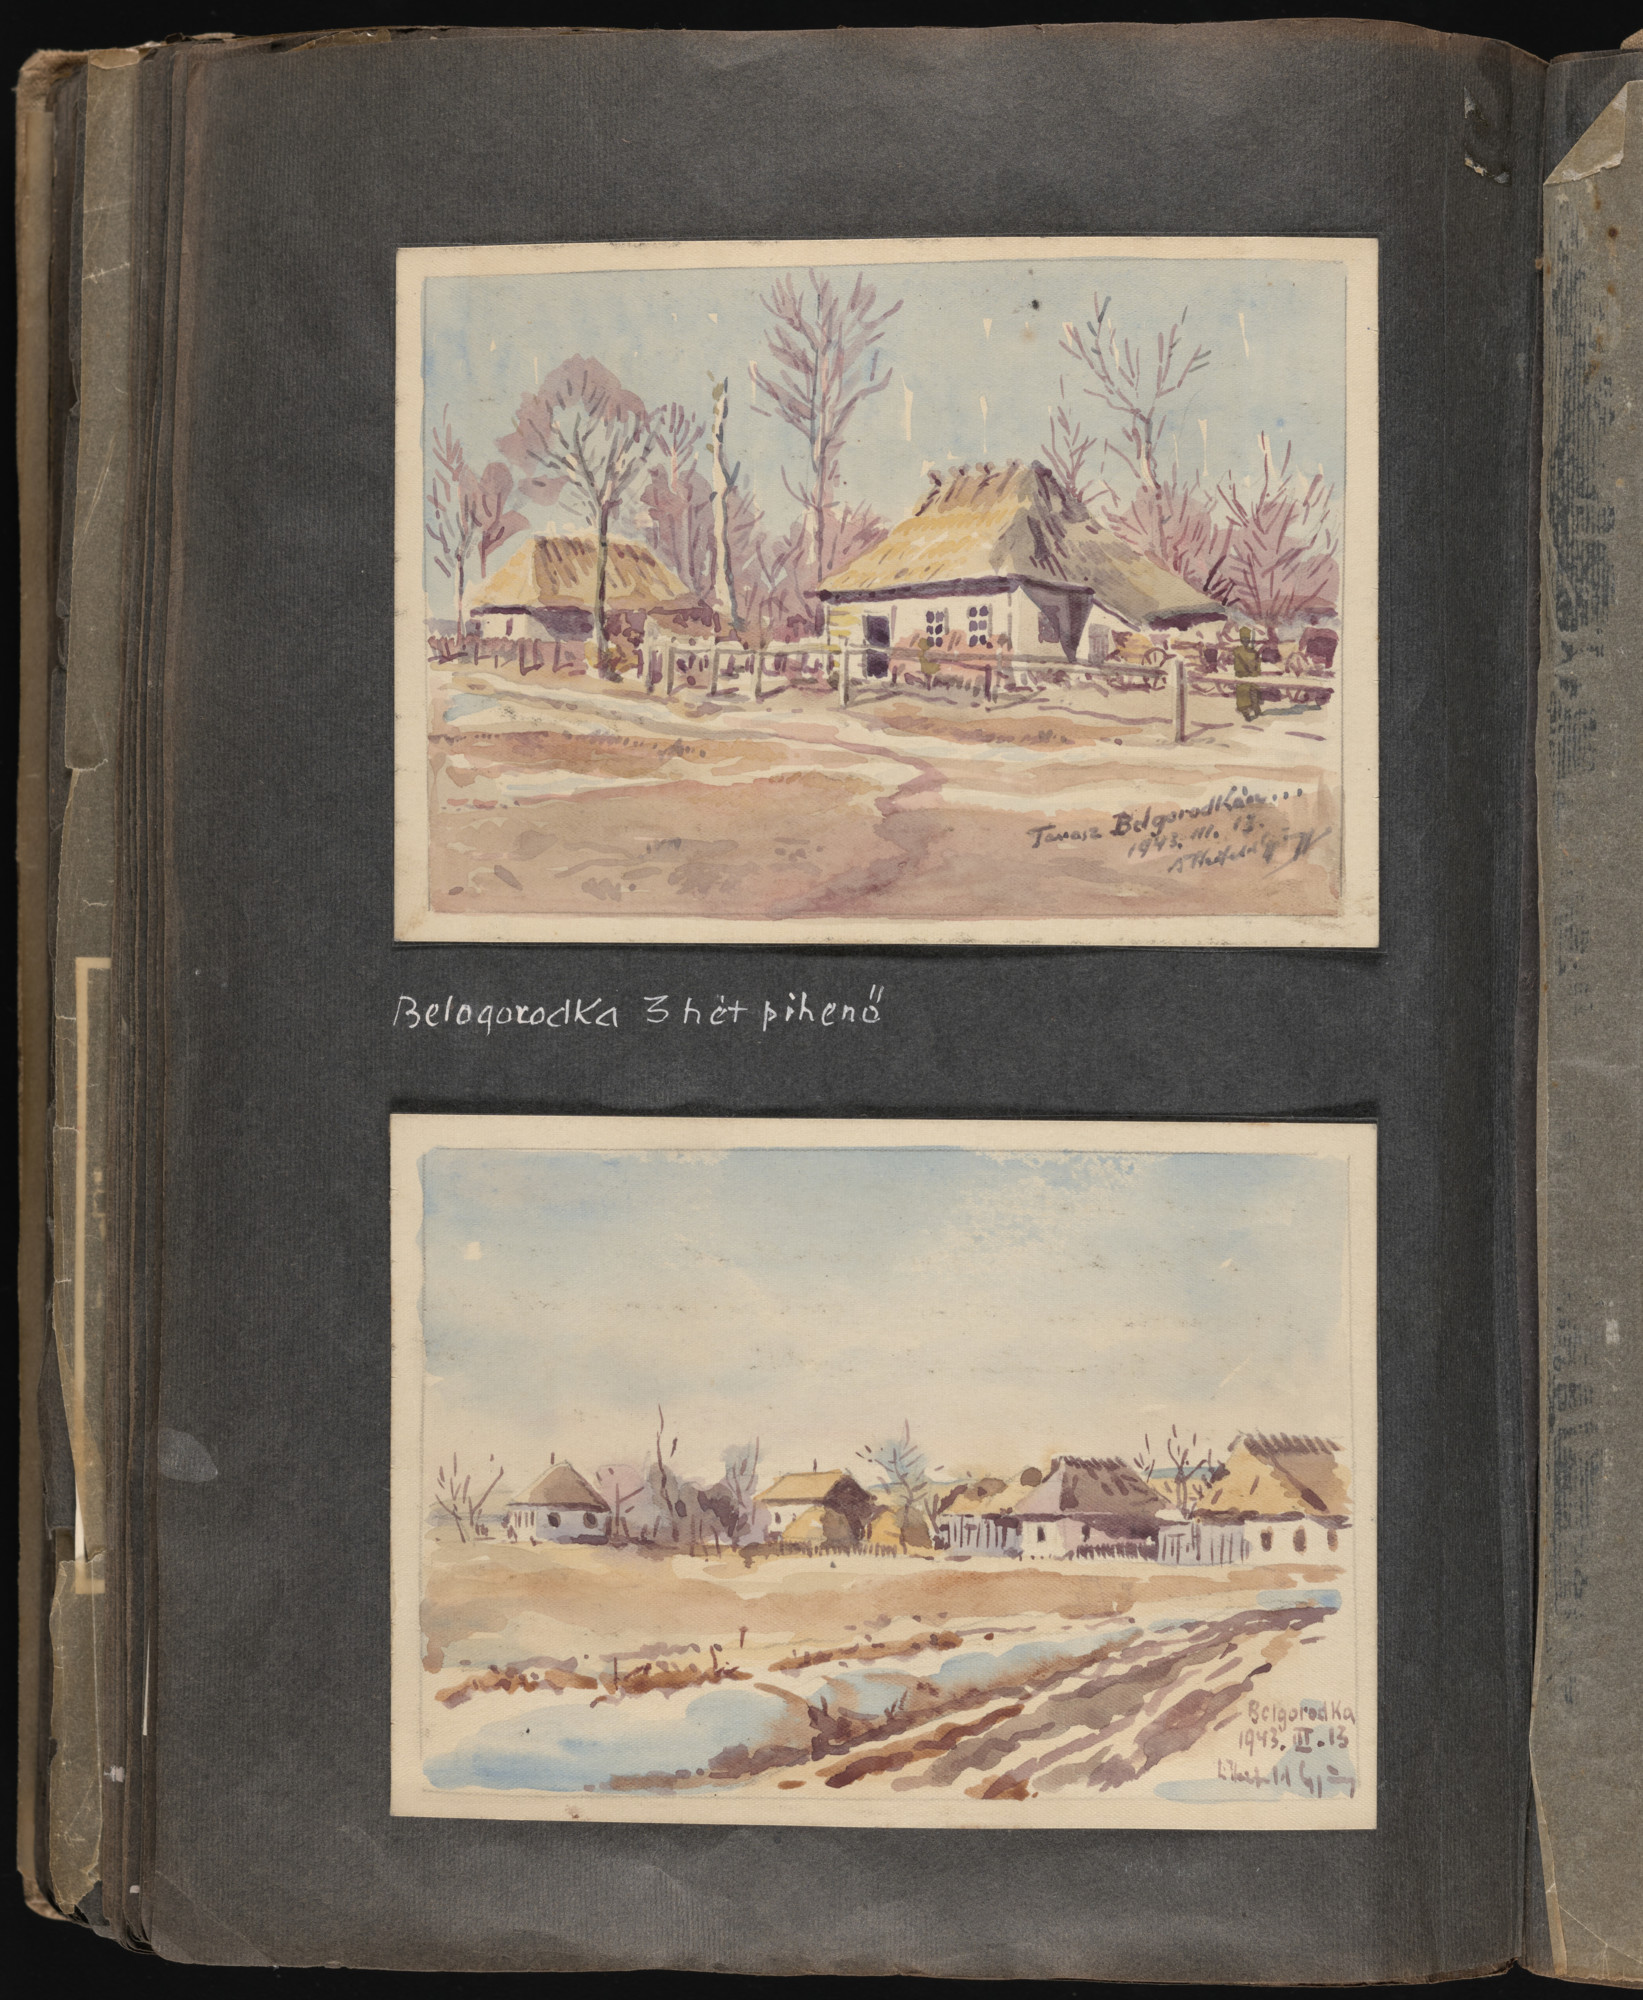 One page of an illustrated album produced by Gyorgy Beifeld (1902-1982), a Hungarian Jew from Budapest, who was drafted into the Munkaszolgalat (Hungarian Labor Service system) and spent more than a year on the Soviet front, from April 1942 through May 1943.  The album contains 402 drawings and watercolors by Byfield, as well as a narrative of his experiences.